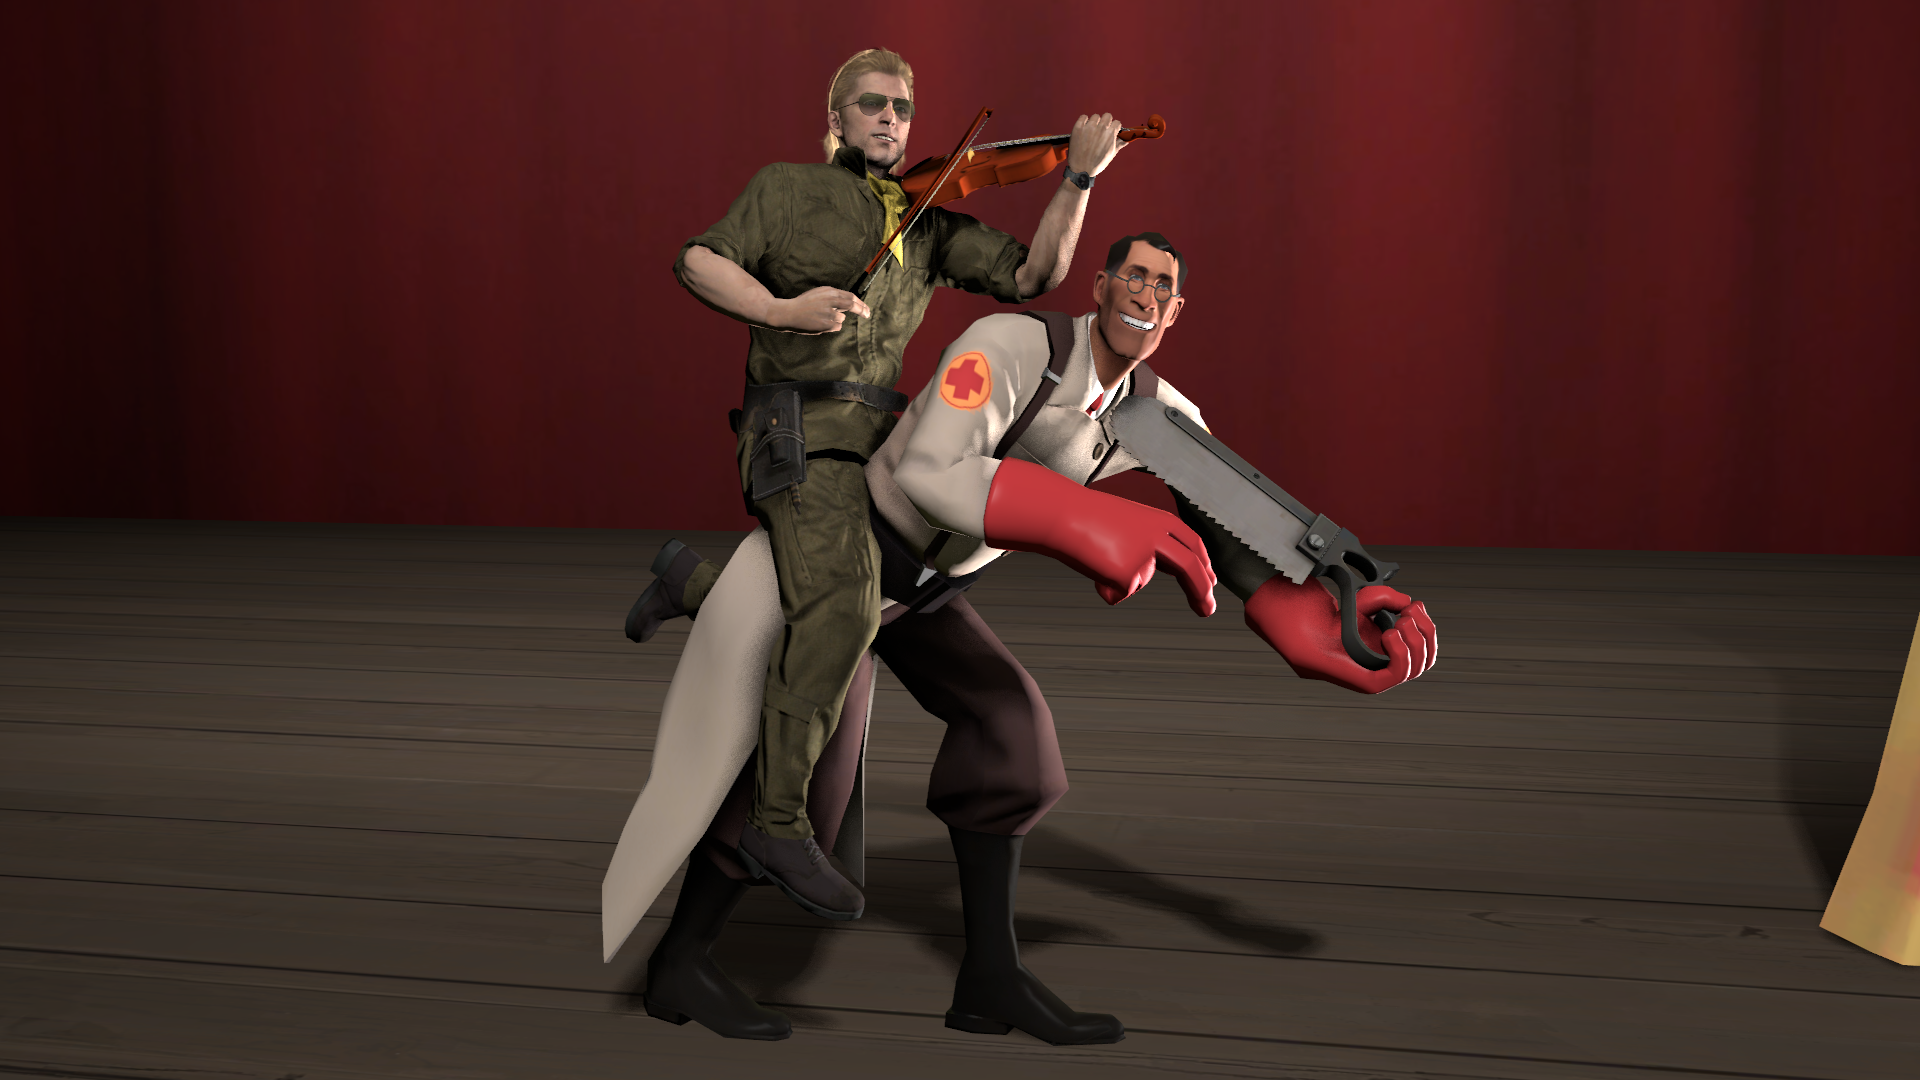 Kazuhira Miller And The Medic They Played Us Like A Damn Fiddle Know Your Meme 1,725 likes · 20 talking about this. kazuhira miller and the medic they